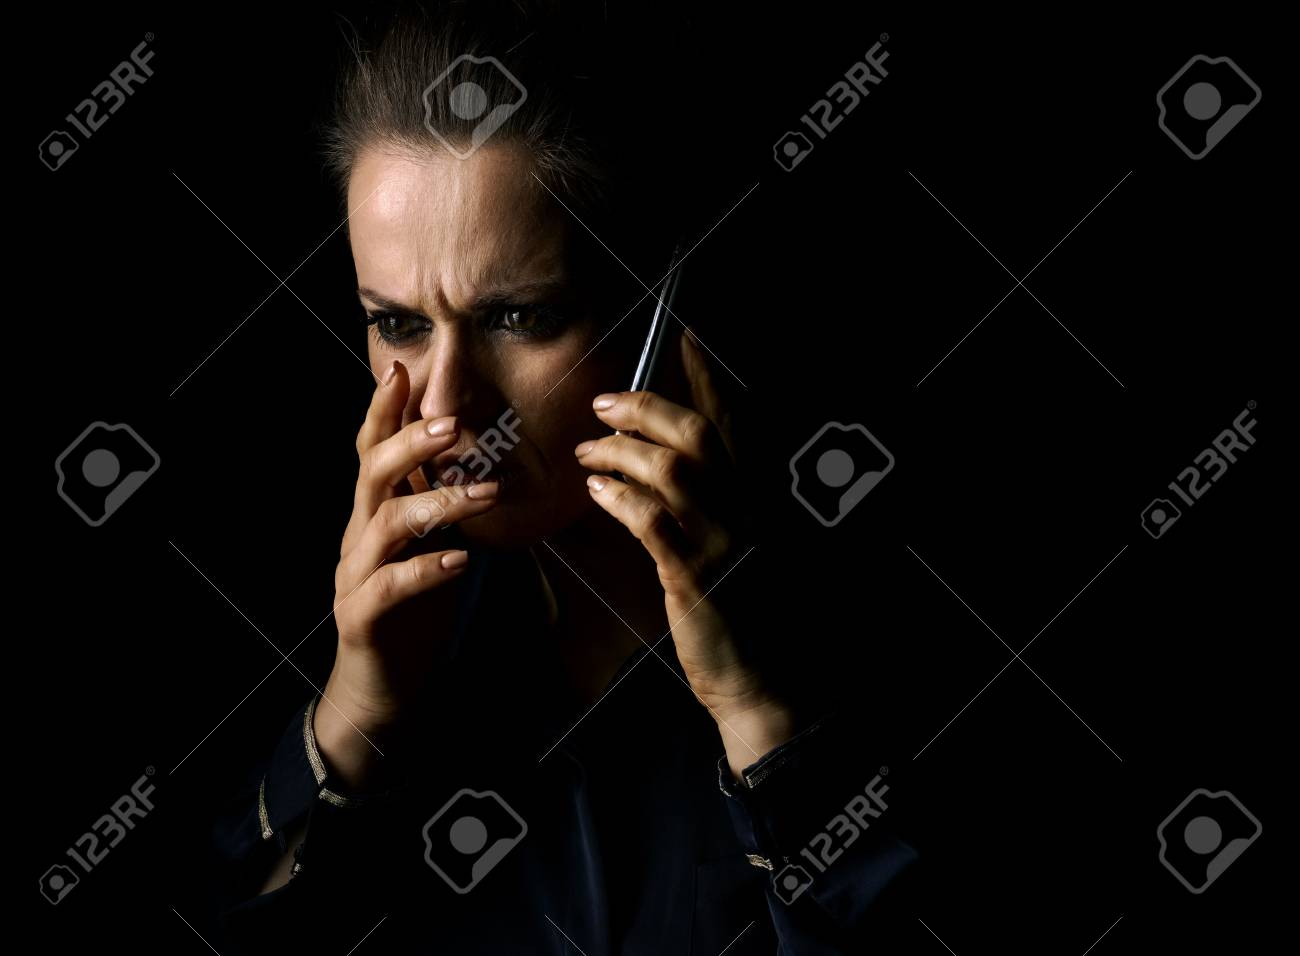 ?oming out into the light. Portrait of stressed woman in the dark dress isolated on black background speaking on a smartphone - 81176993